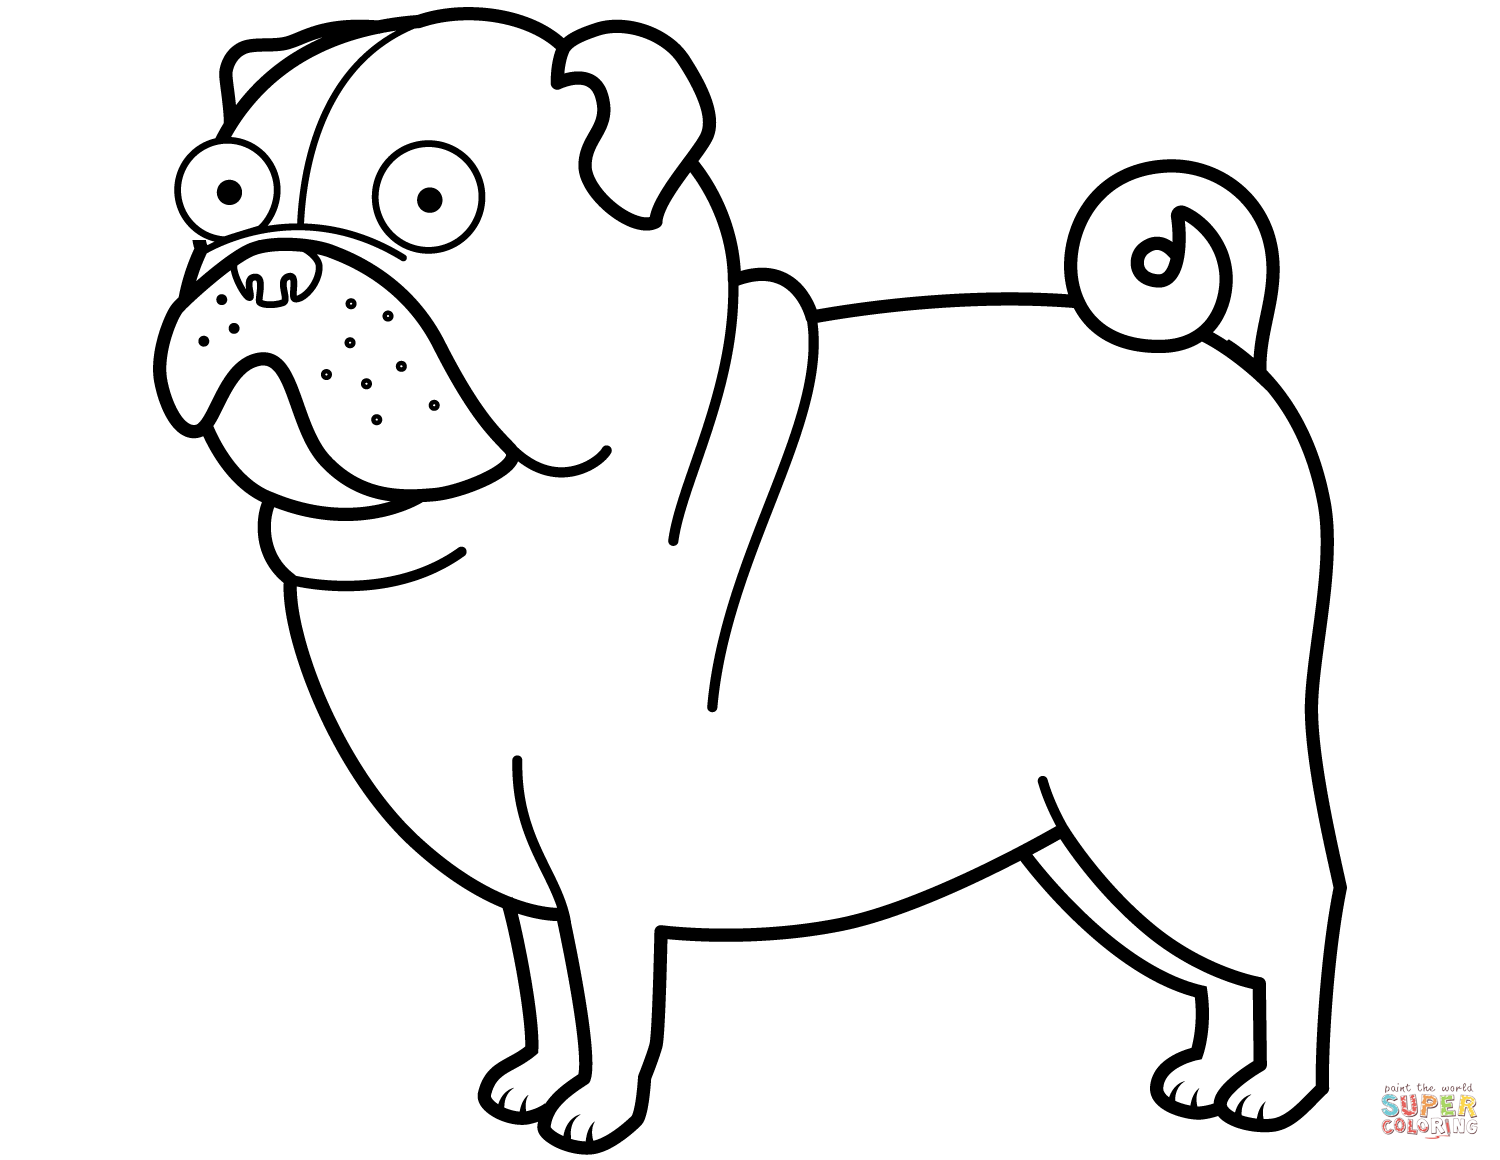 Pug Dog coloring page | Free Printable Coloring Pages